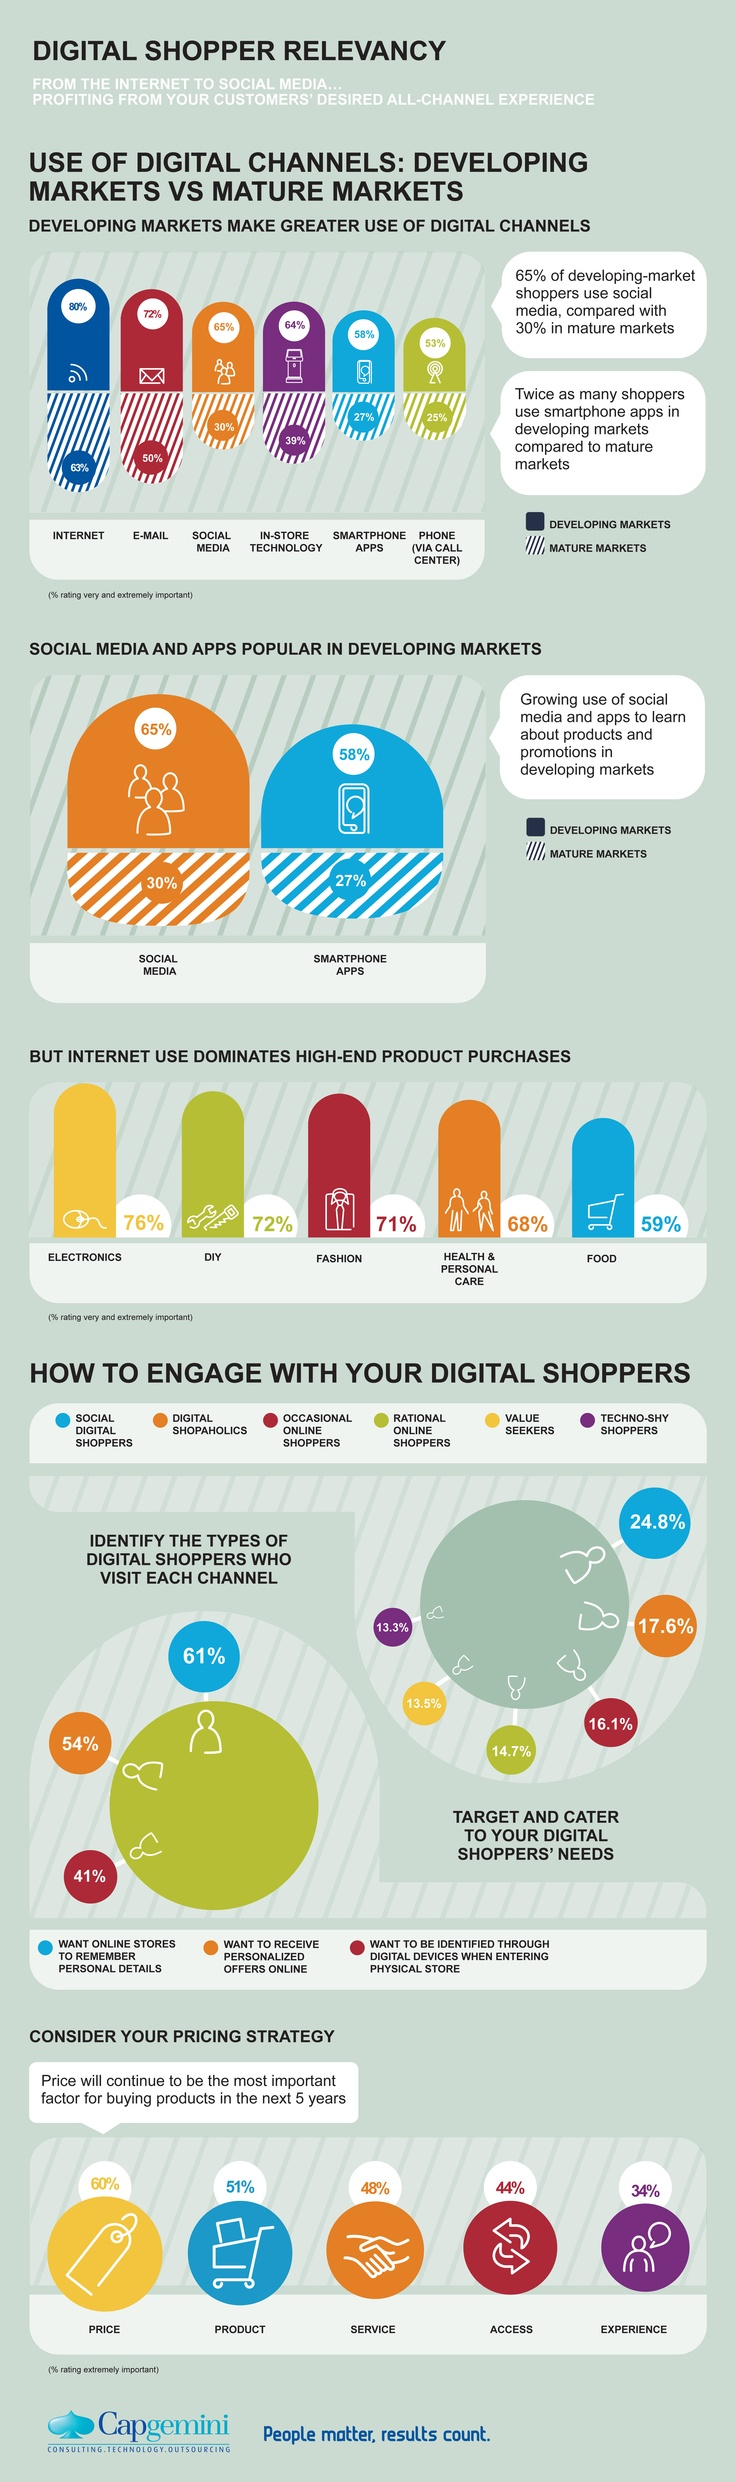 "In the July 2012 report ""Digital Shopper Relevancy,"" Capgemini surveyed 16,000 digital shoppers across 16 developing and mature markets about their use of different channels and devices for shopping: shoppers are not loyal to one channel but expect a seamless integration across online, social media, mobile and physical stores. Learn more: http://www.capgemini.com/insights-and-resources/by-publication/digital-shopper-relevancy-full-report/ #infographic #retail #mobile #shopping #online"